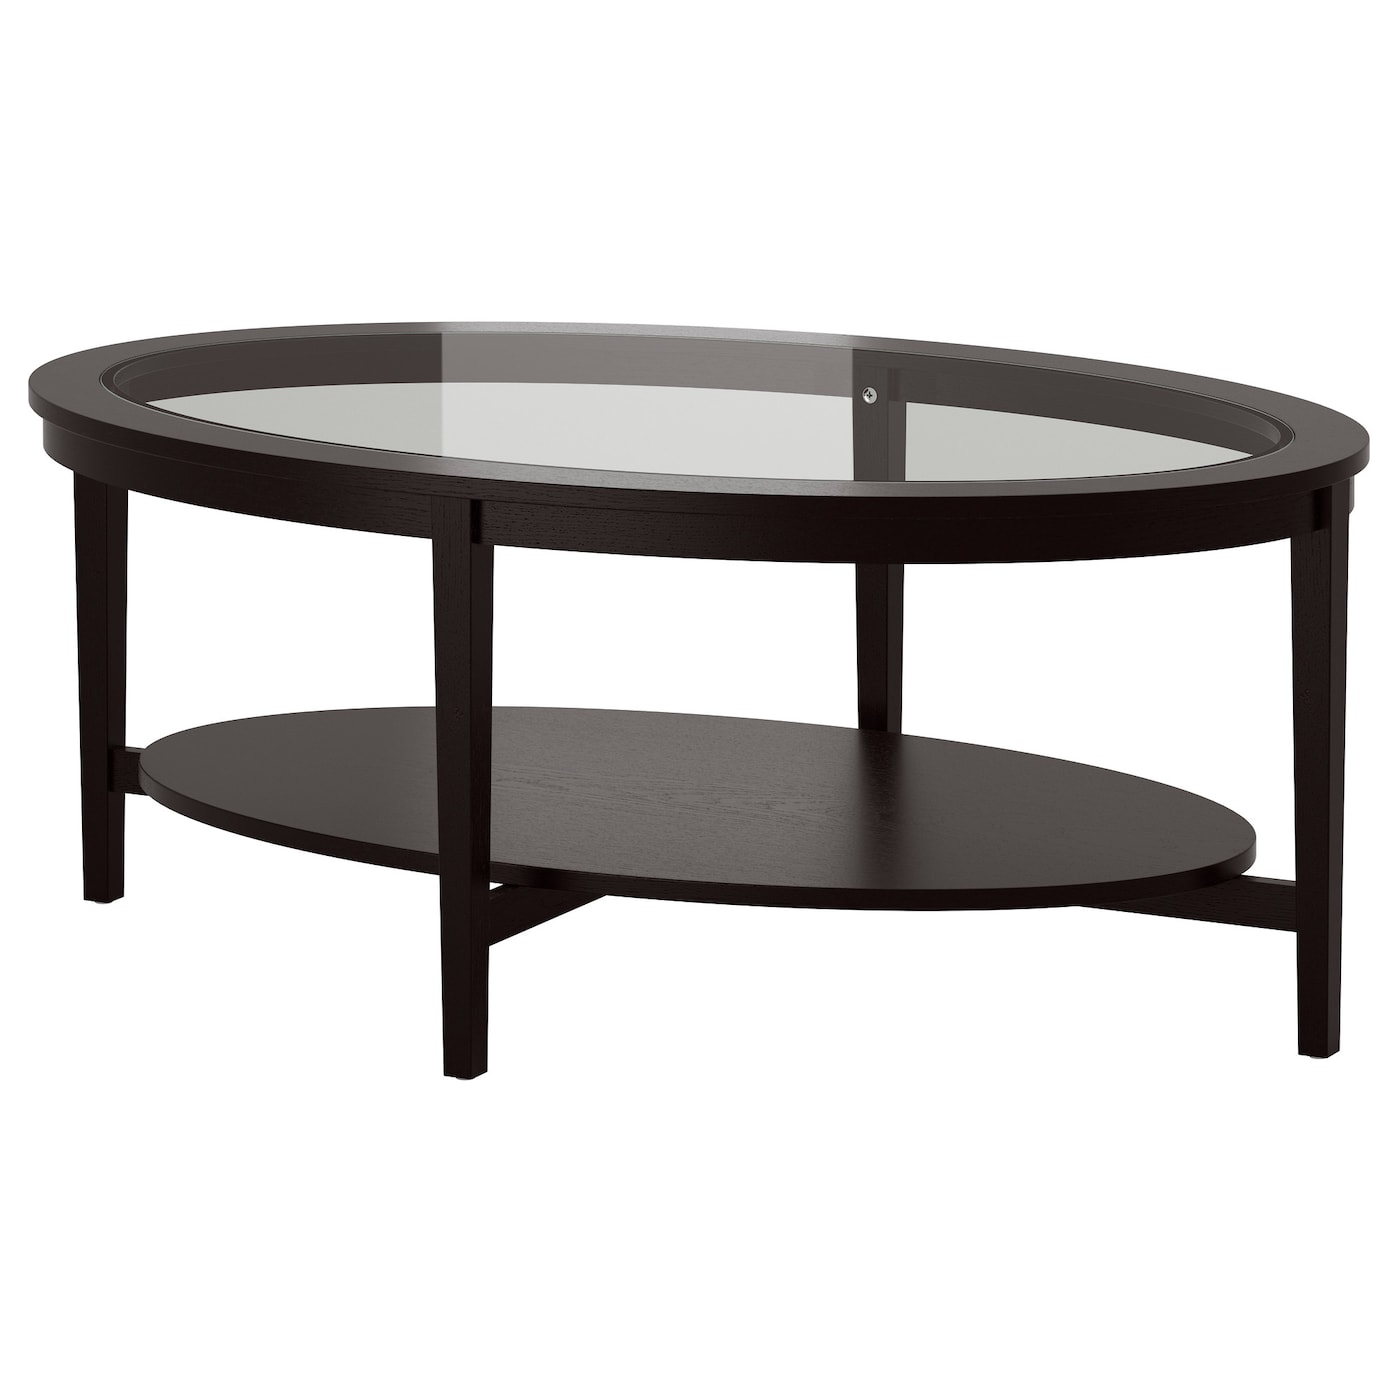 Malmsta coffee table black brown 130x80 cm ikea for Base de table ikea